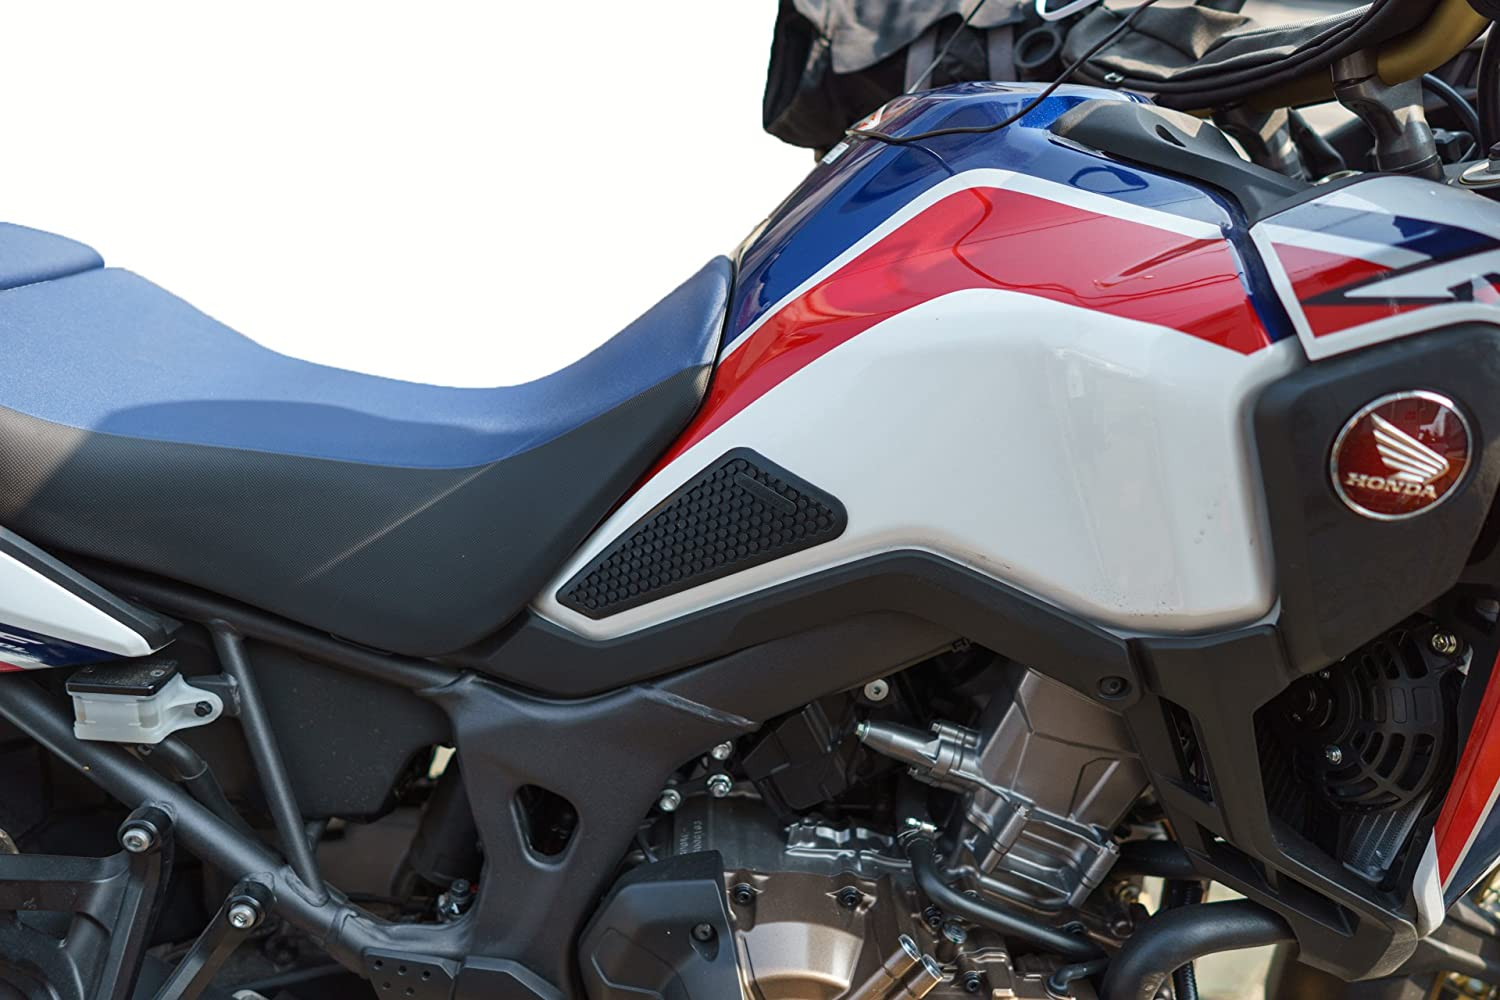 Tank Traction Pad Side Gas Knee Grip Protector For Africa Twin CRF1000